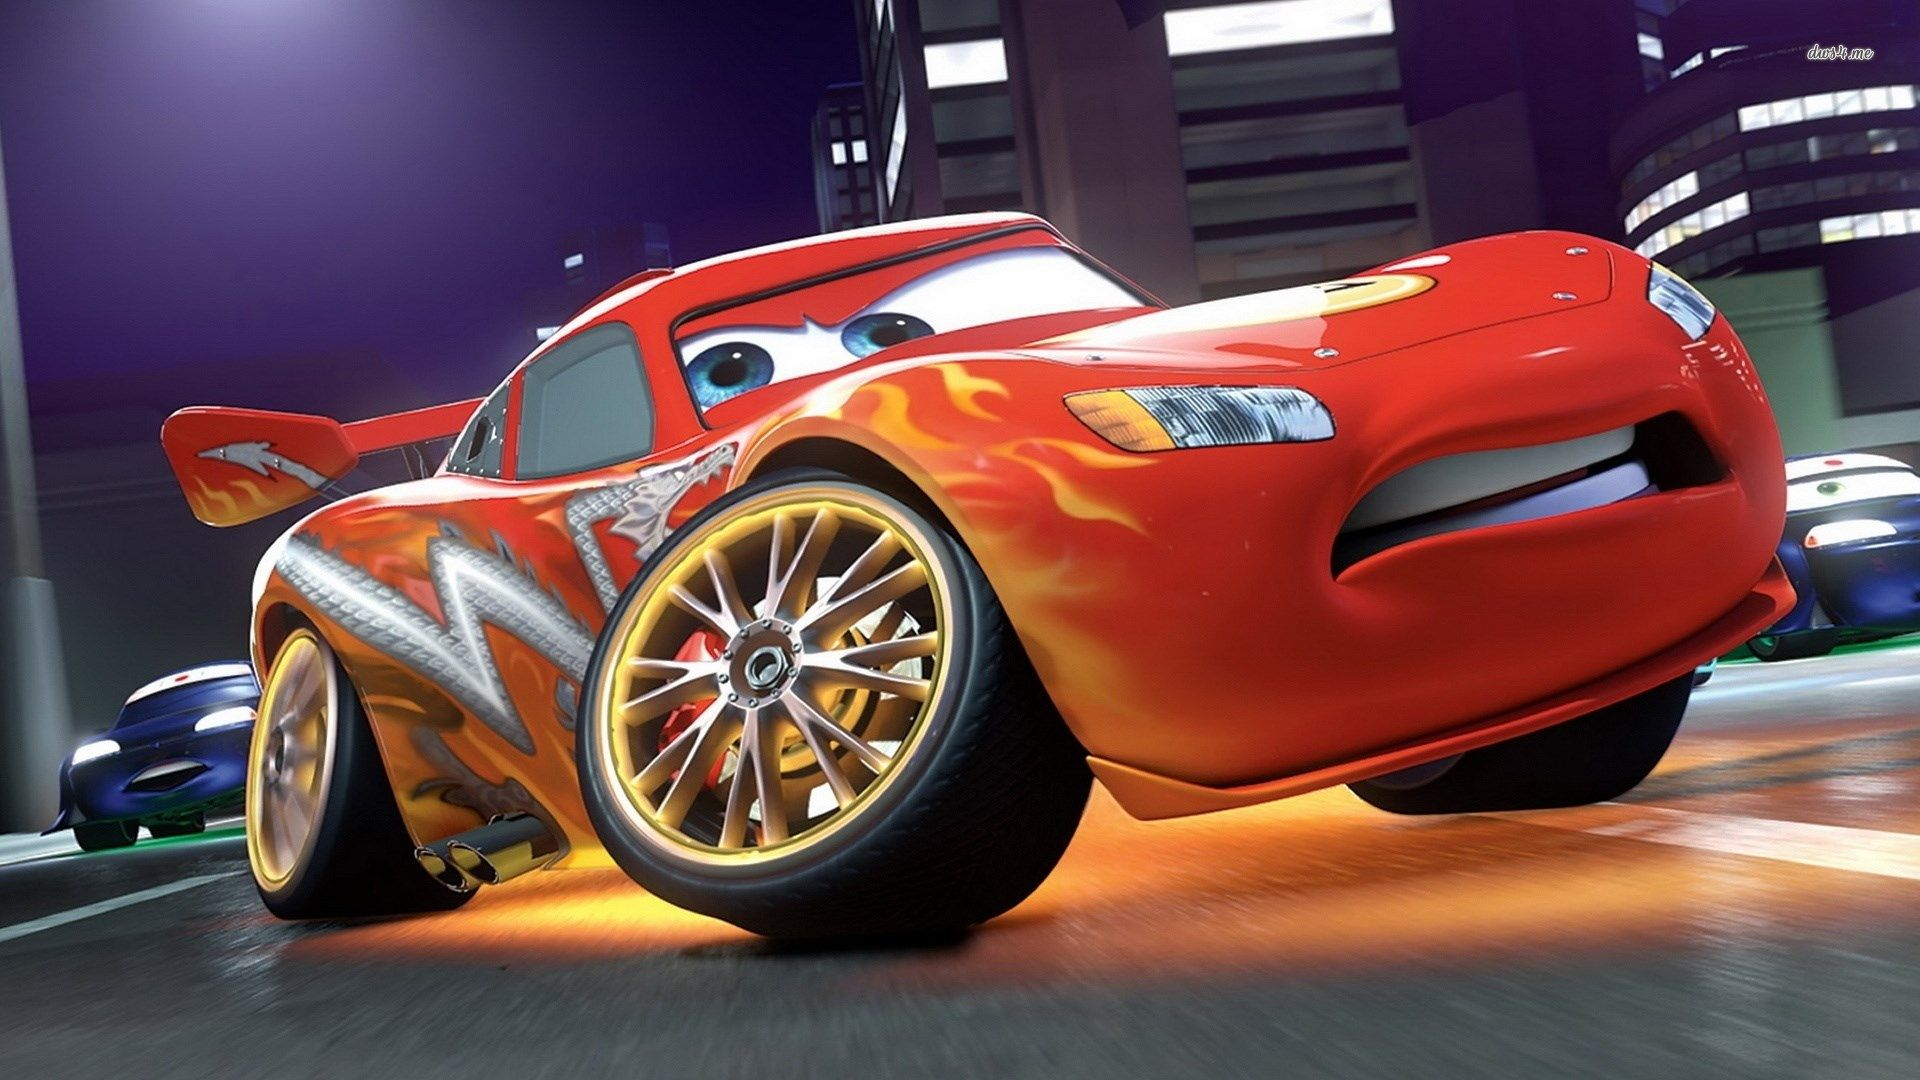 Cars 2 Background Hd Beowulf Peacock 1920x1080 Con Imagenes